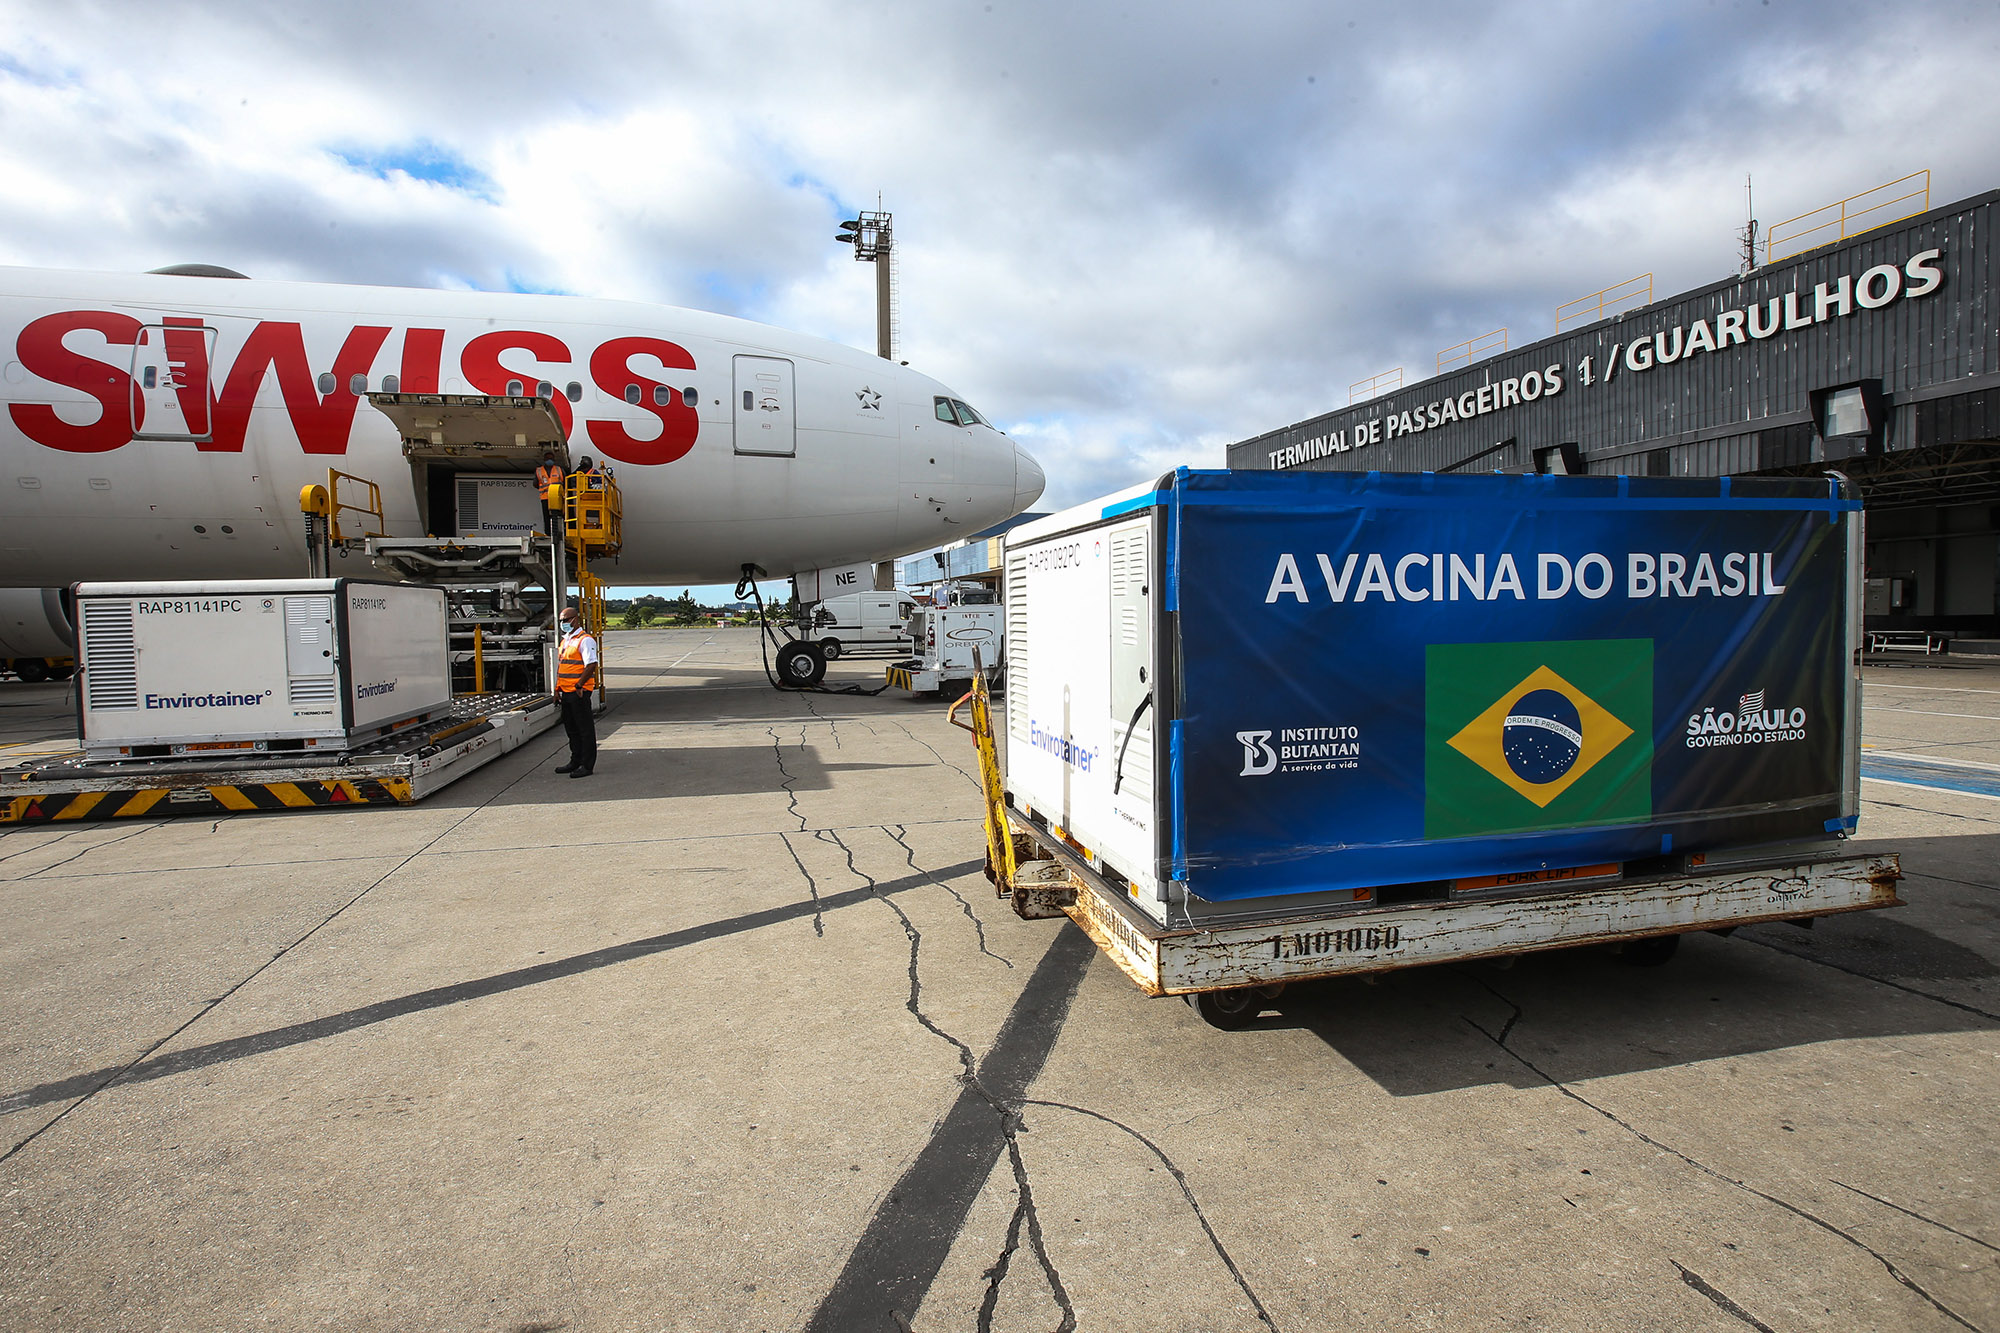 A container with CoronaVac vaccines developed by China's Sinovac in partnership with the Butantan Institute arrived from China in Sao Paulo on December 30, 2020.